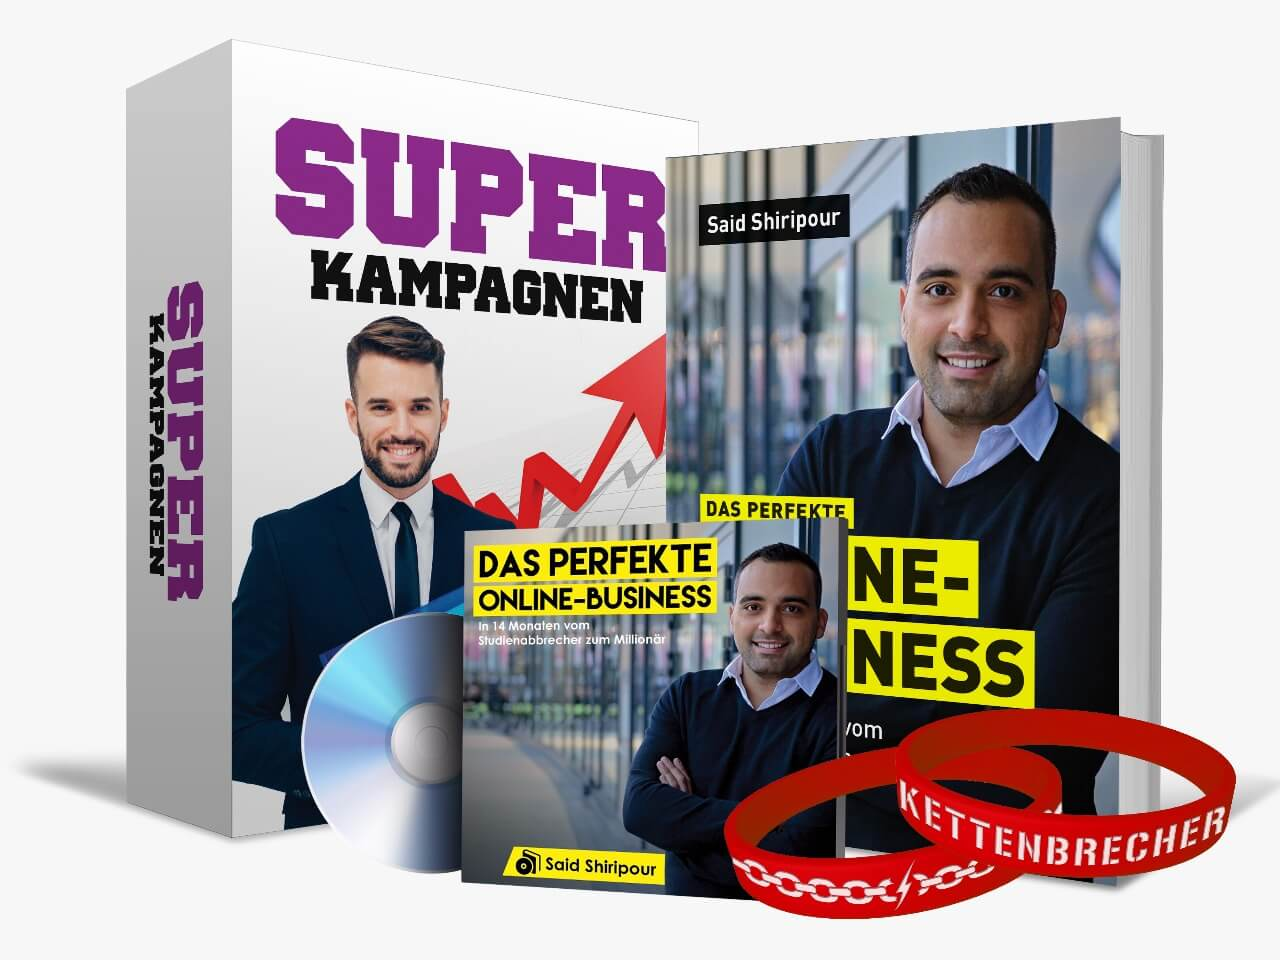 Das perfekte Online Business - Said Shiripour Buch